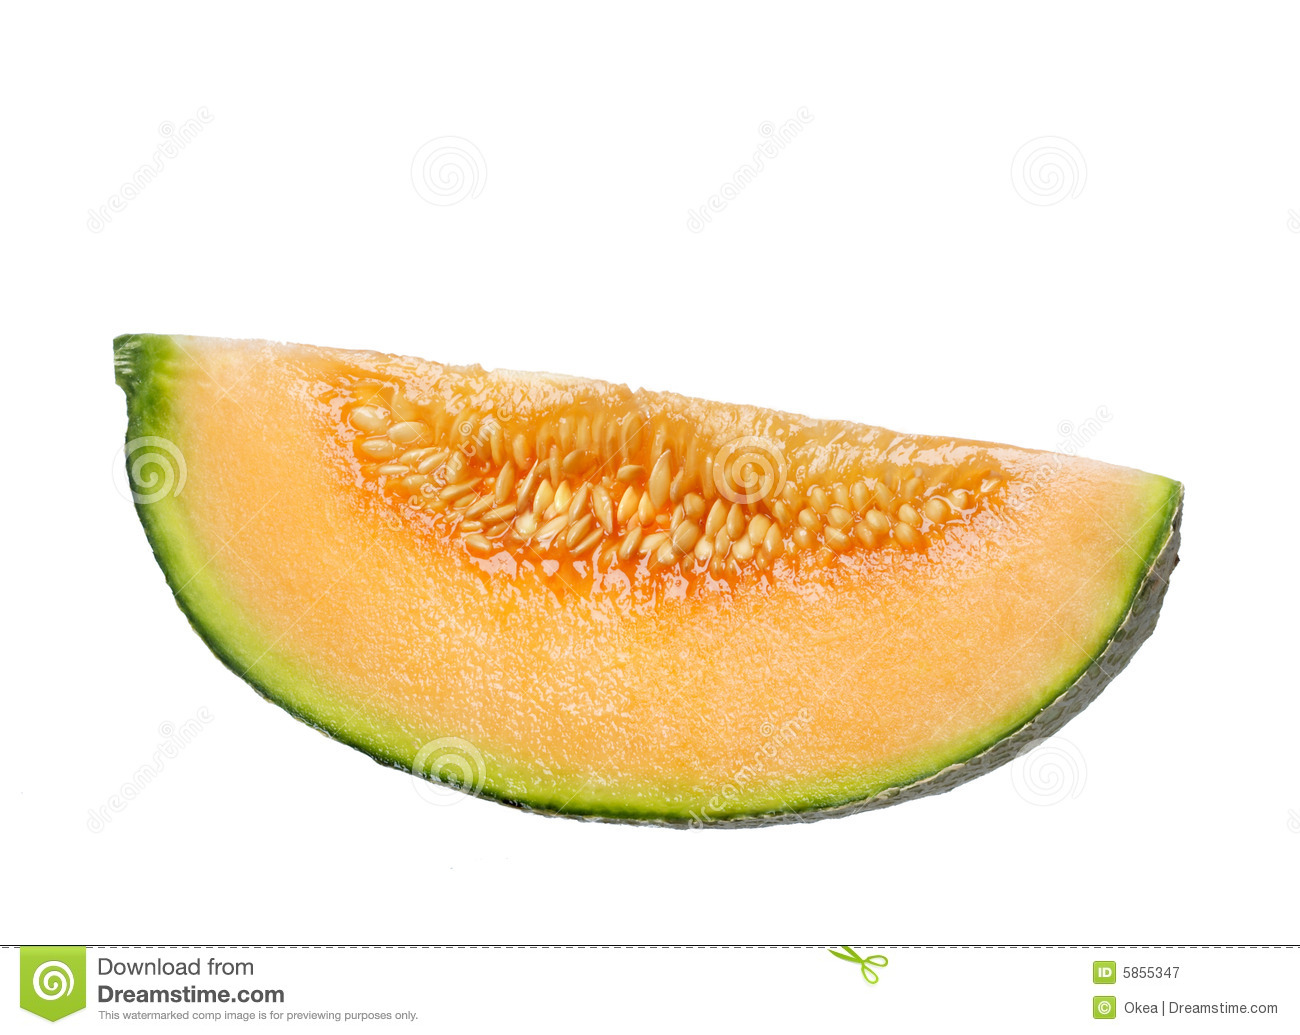 how to grow rockmelon from seeds